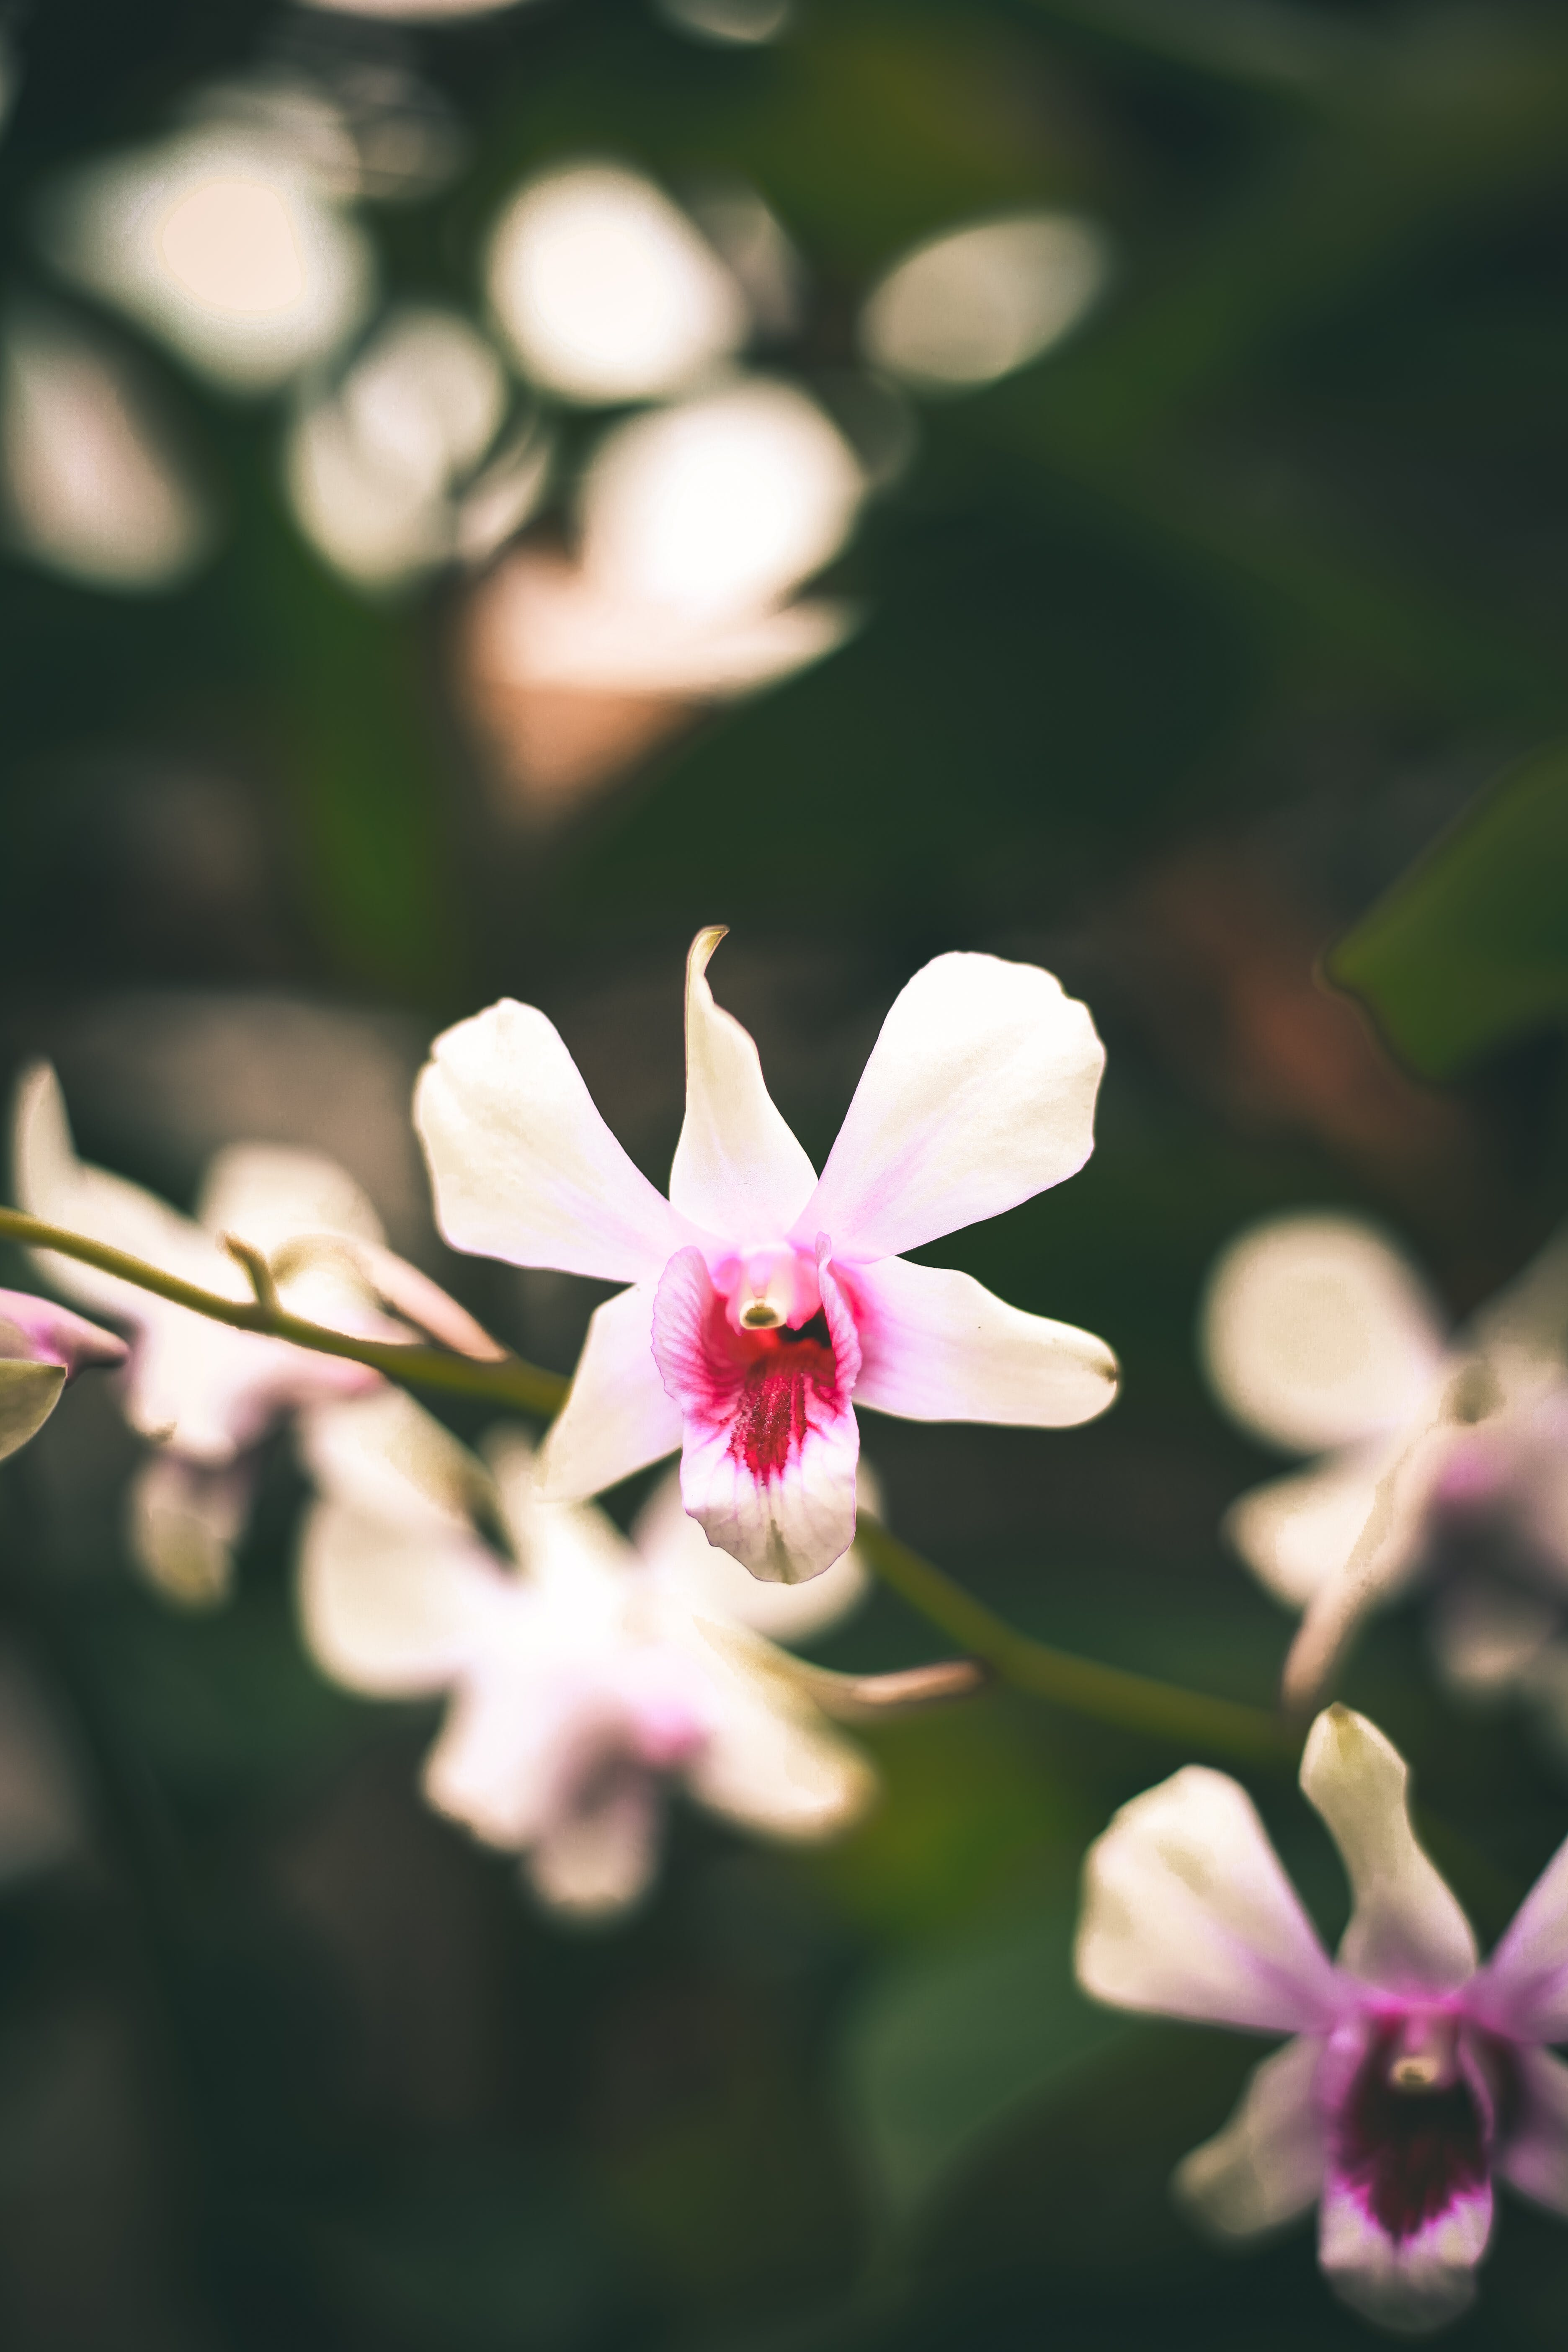 Selective Focus Photography of White-and-pink Petaled Flowers